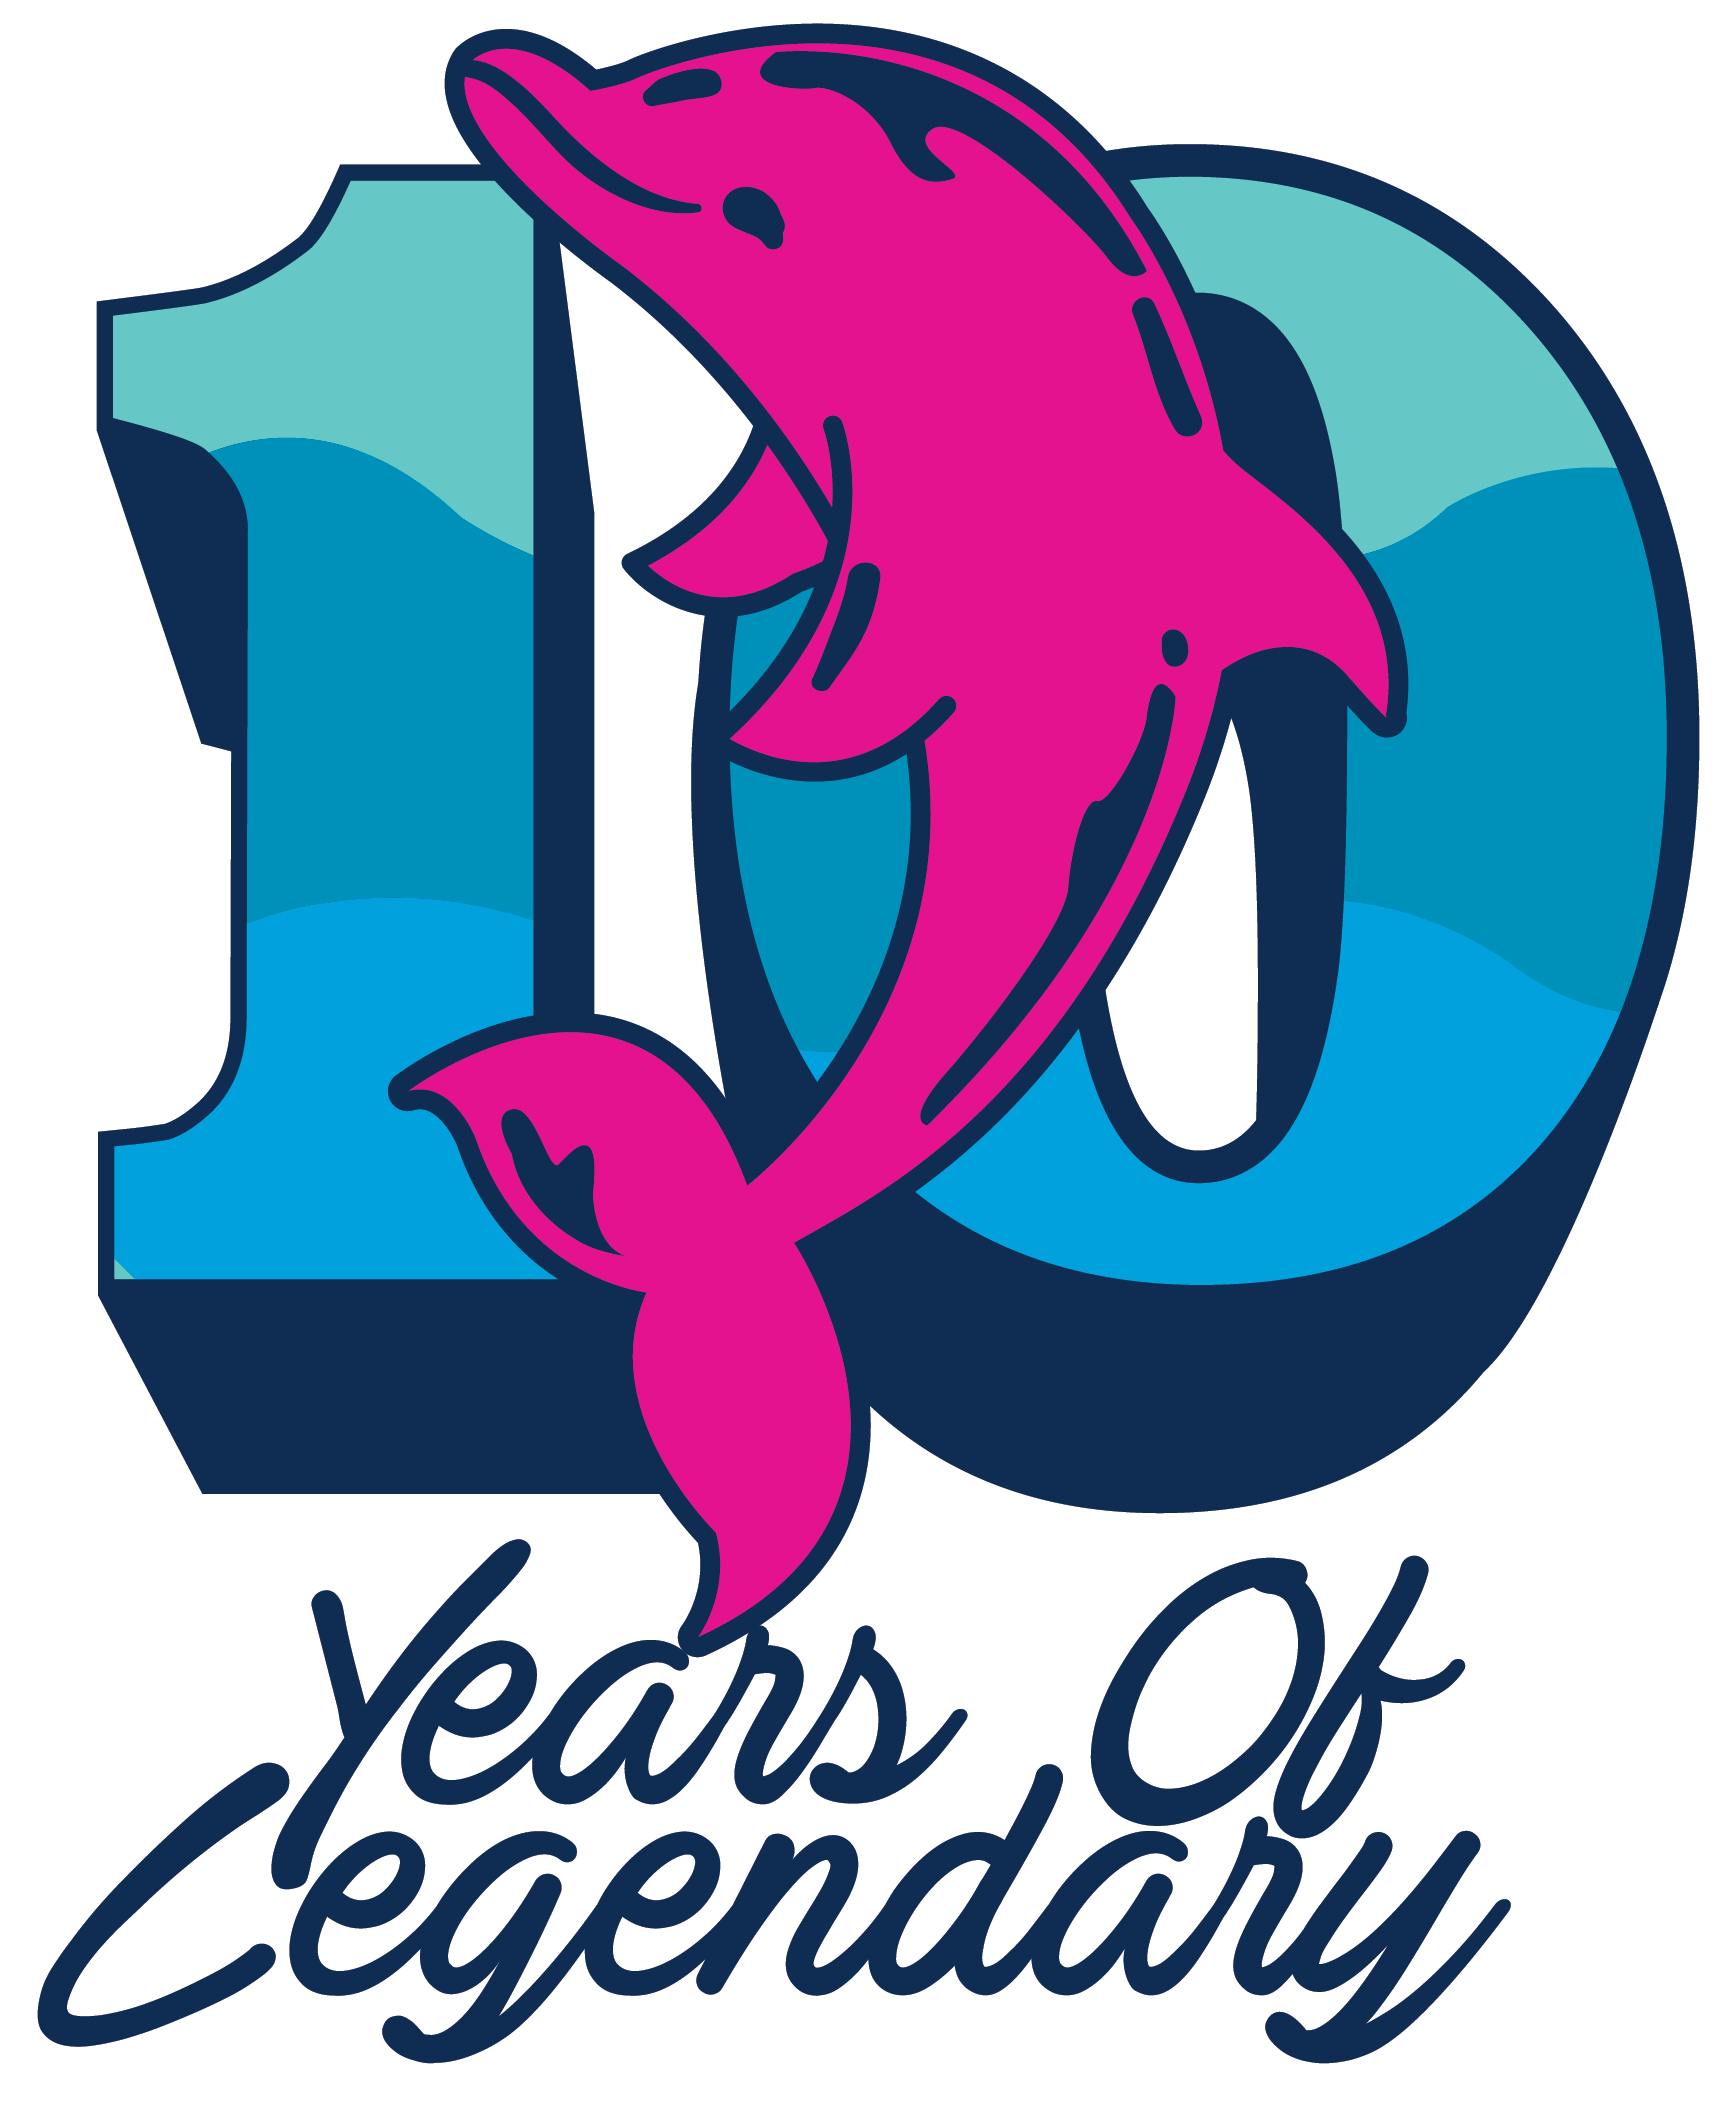 Pink dolphin ghost logo wallpapers top free pink dolphin - Pink dolphin logo wallpaper ...